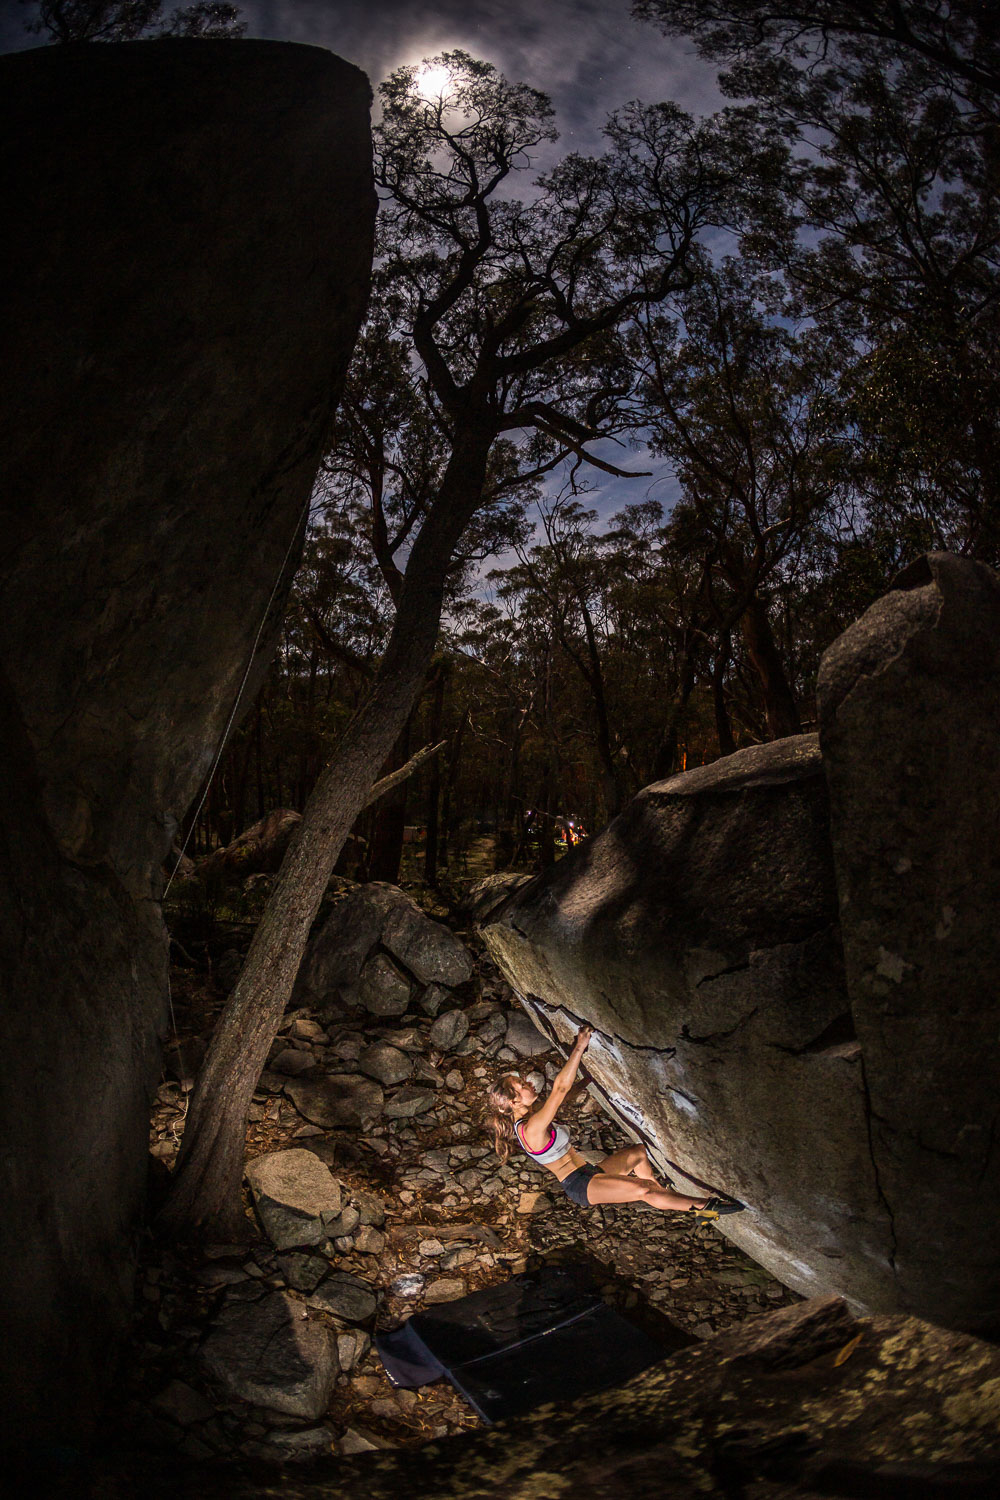 Rosalyn Blake, Bouldering, North Black Range